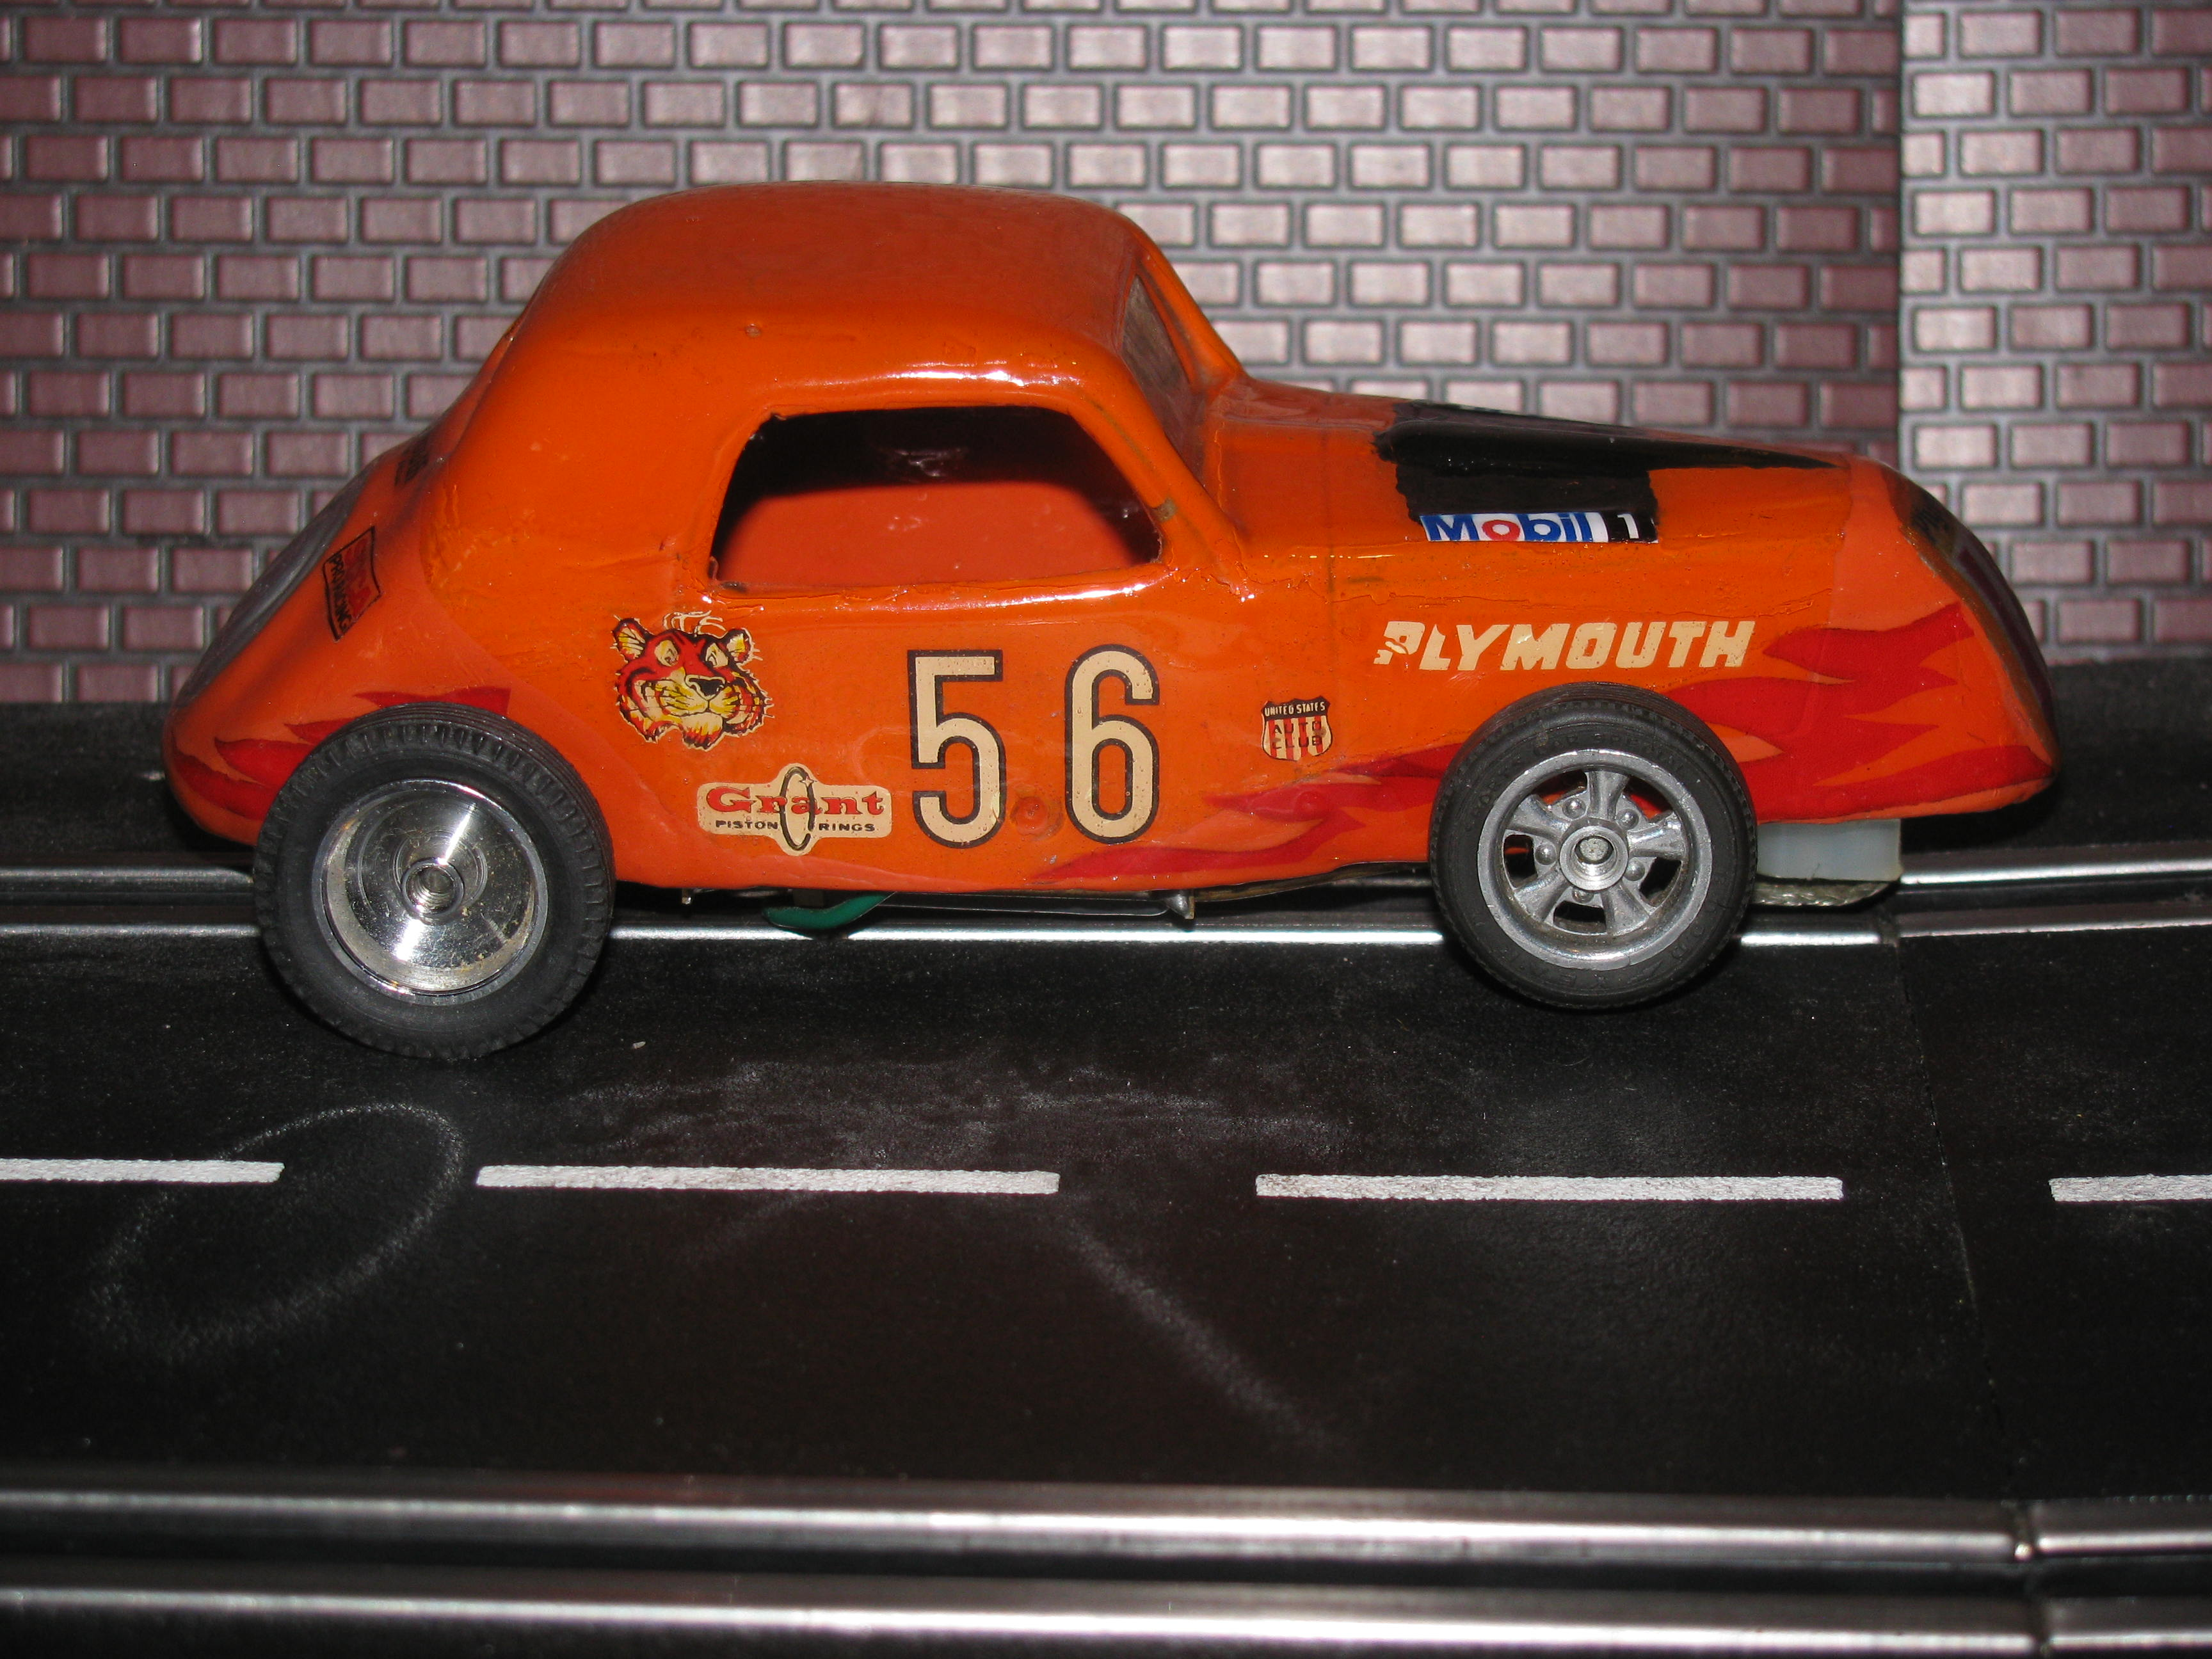 *SOLD* Vintage Plymouth Roadster with Aristo-craft chassis  - Orange Car 56 - 1/32 Scale